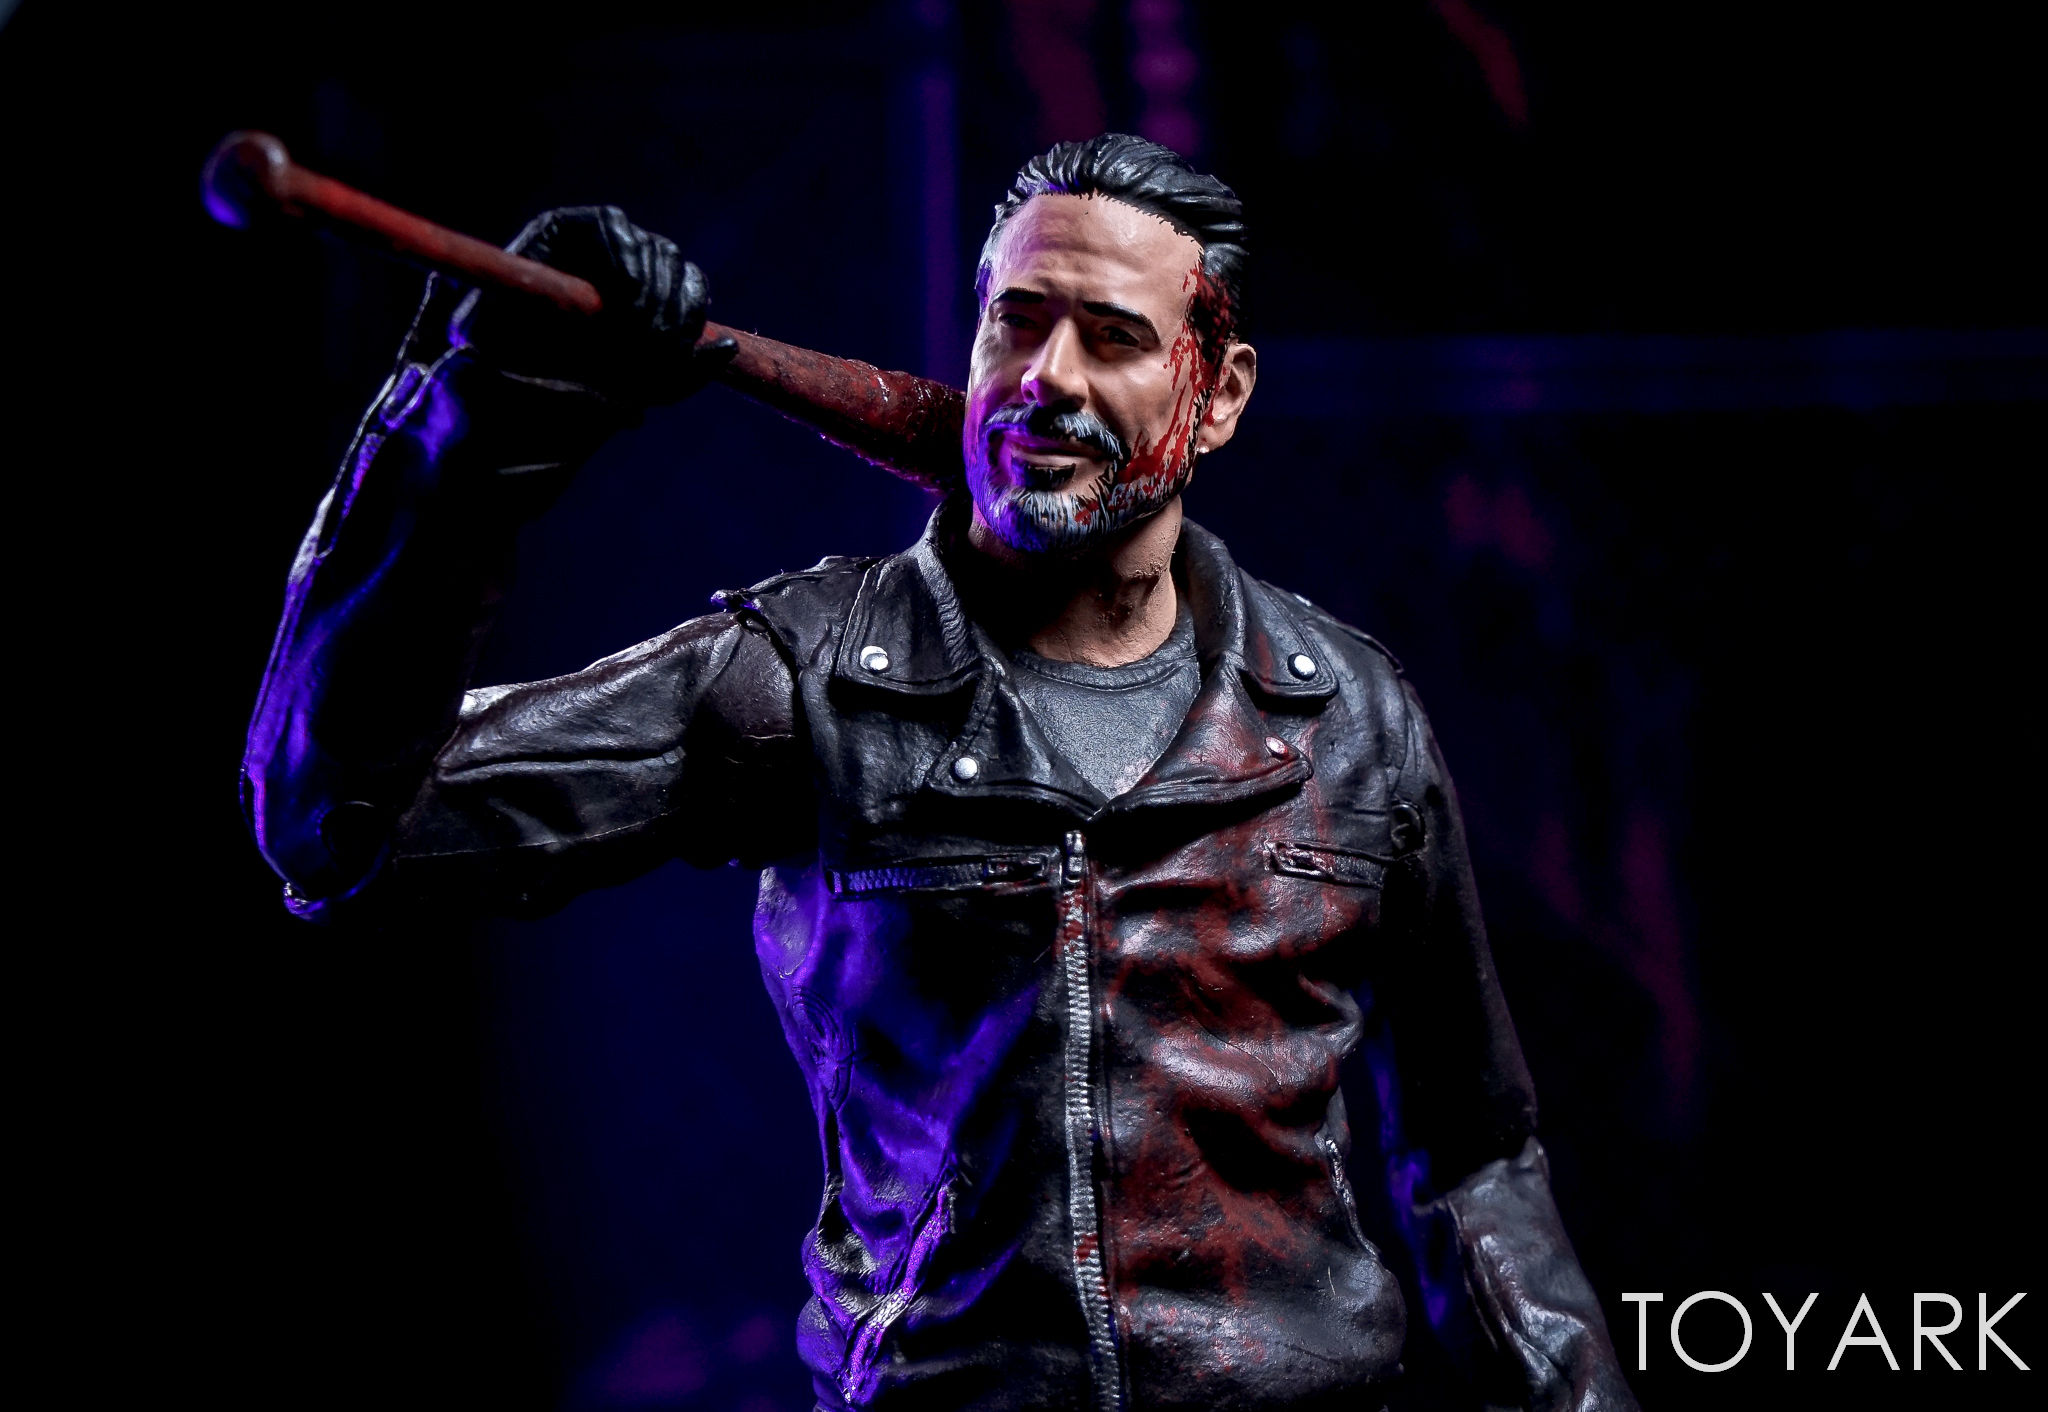 http://news.toyark.com/wp-content/uploads/sites/4/2017/05/McFarlane-Walking-Dead-Negan-043.jpg